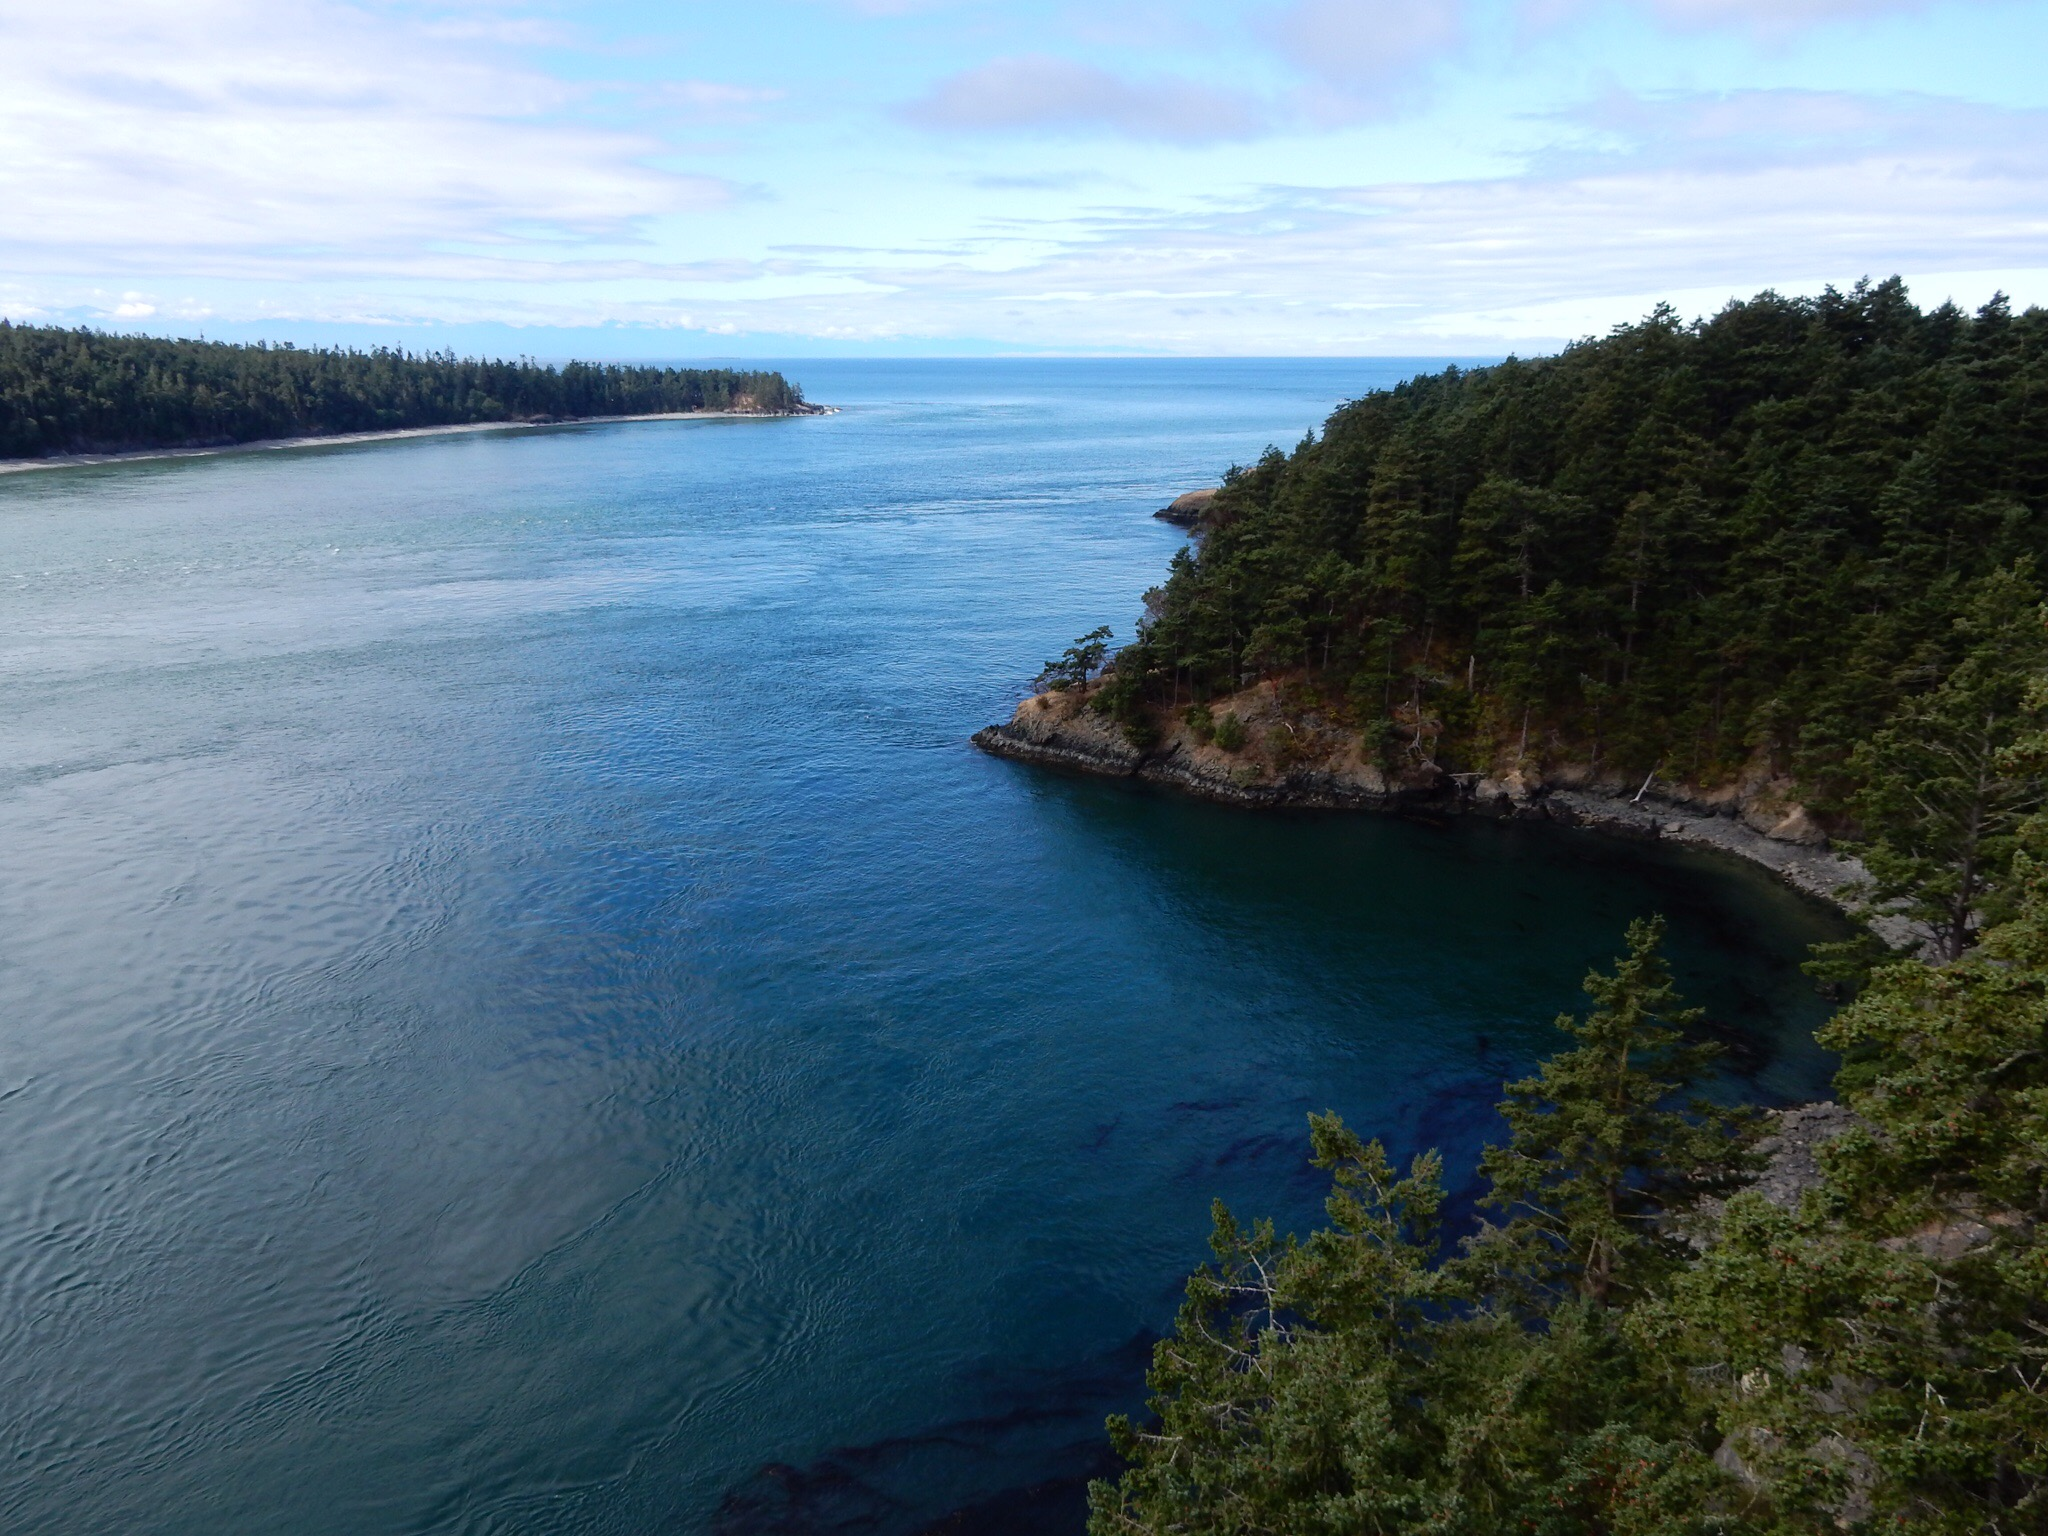 A view from the east side of Deception Pass.A view from the east side of Deception Pass.